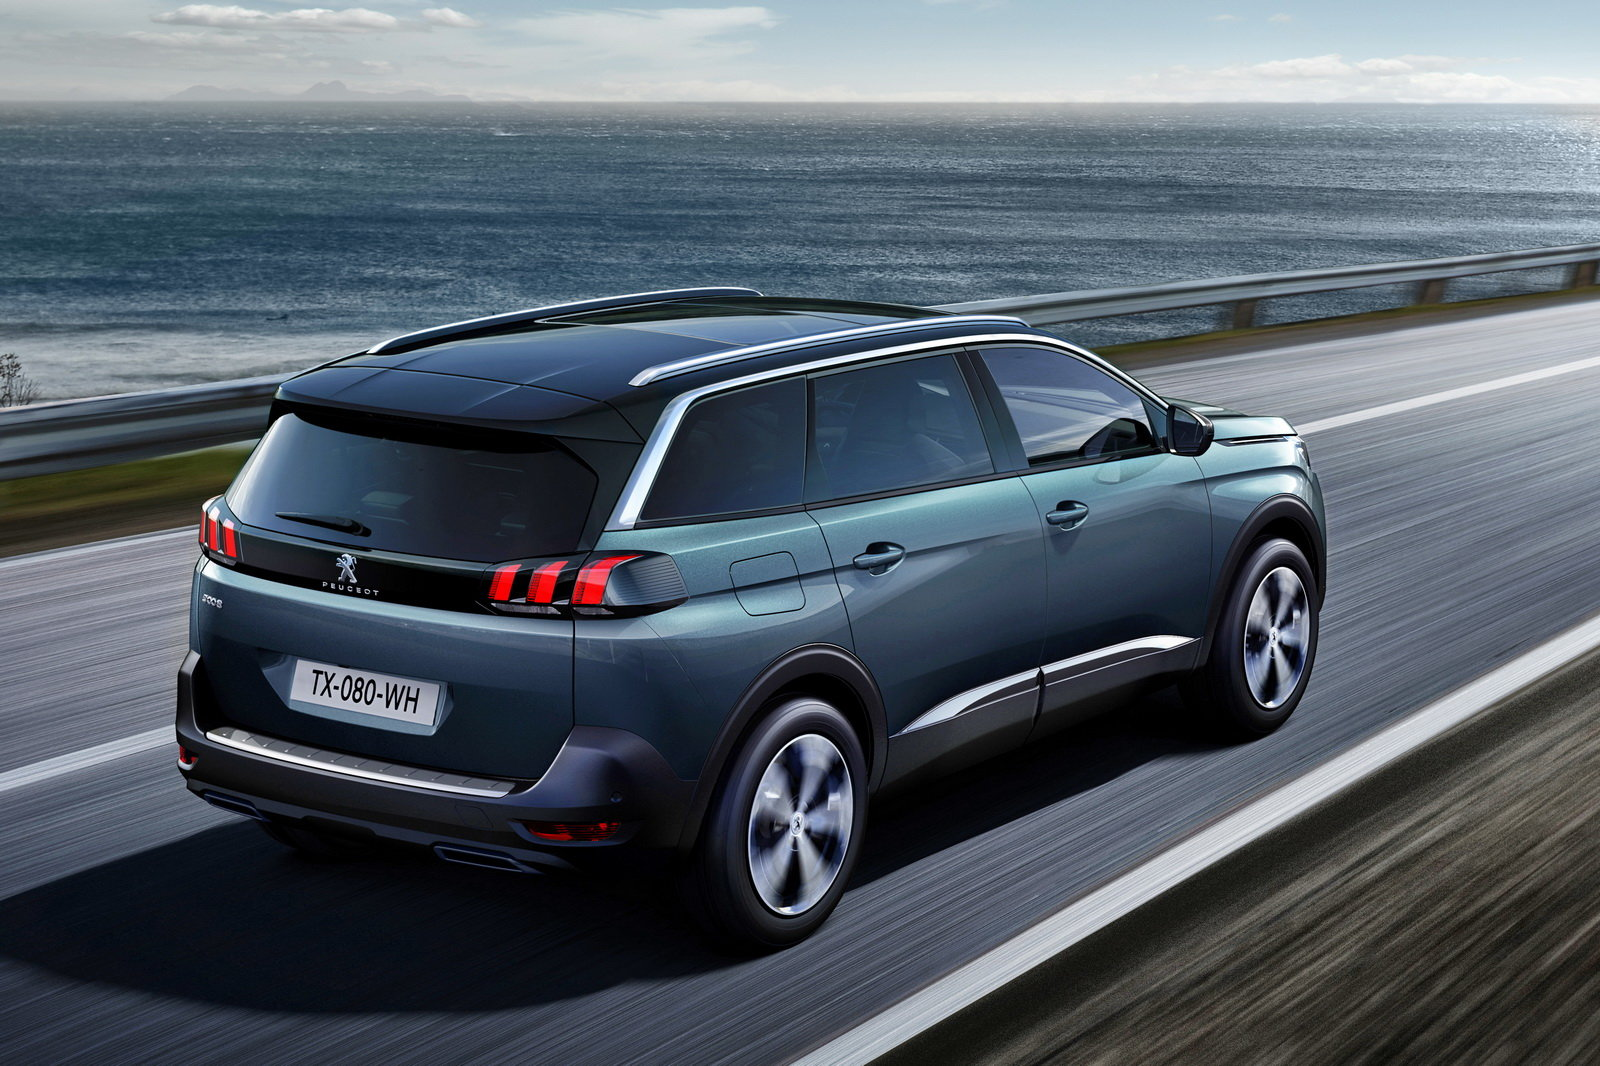 foto la peugeot 5008 si trasforma in una suv. Black Bedroom Furniture Sets. Home Design Ideas